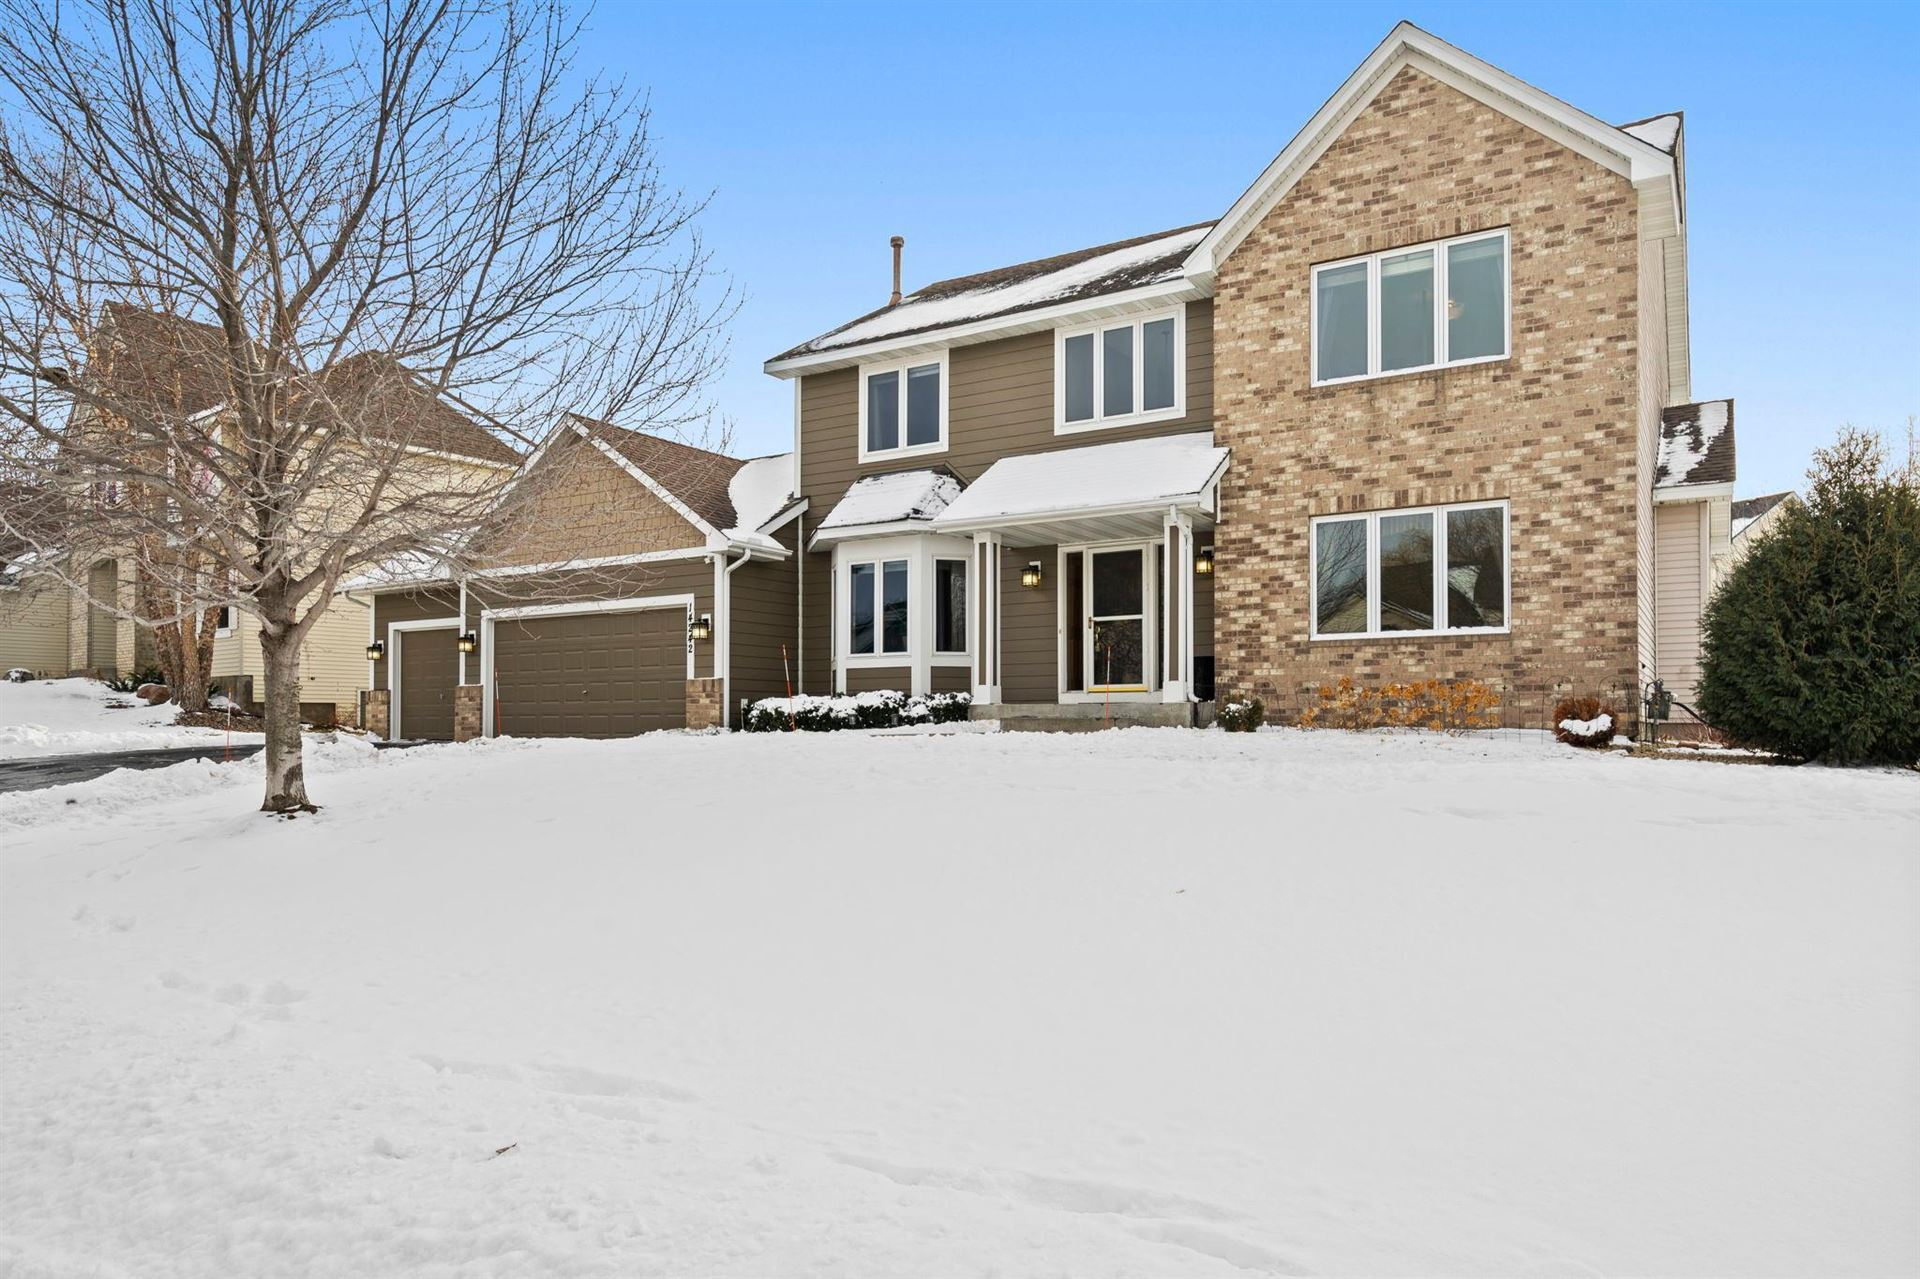 Photo of 14242 Fossil Lane, Apple Valley, MN 55124 (MLS # 5700313)